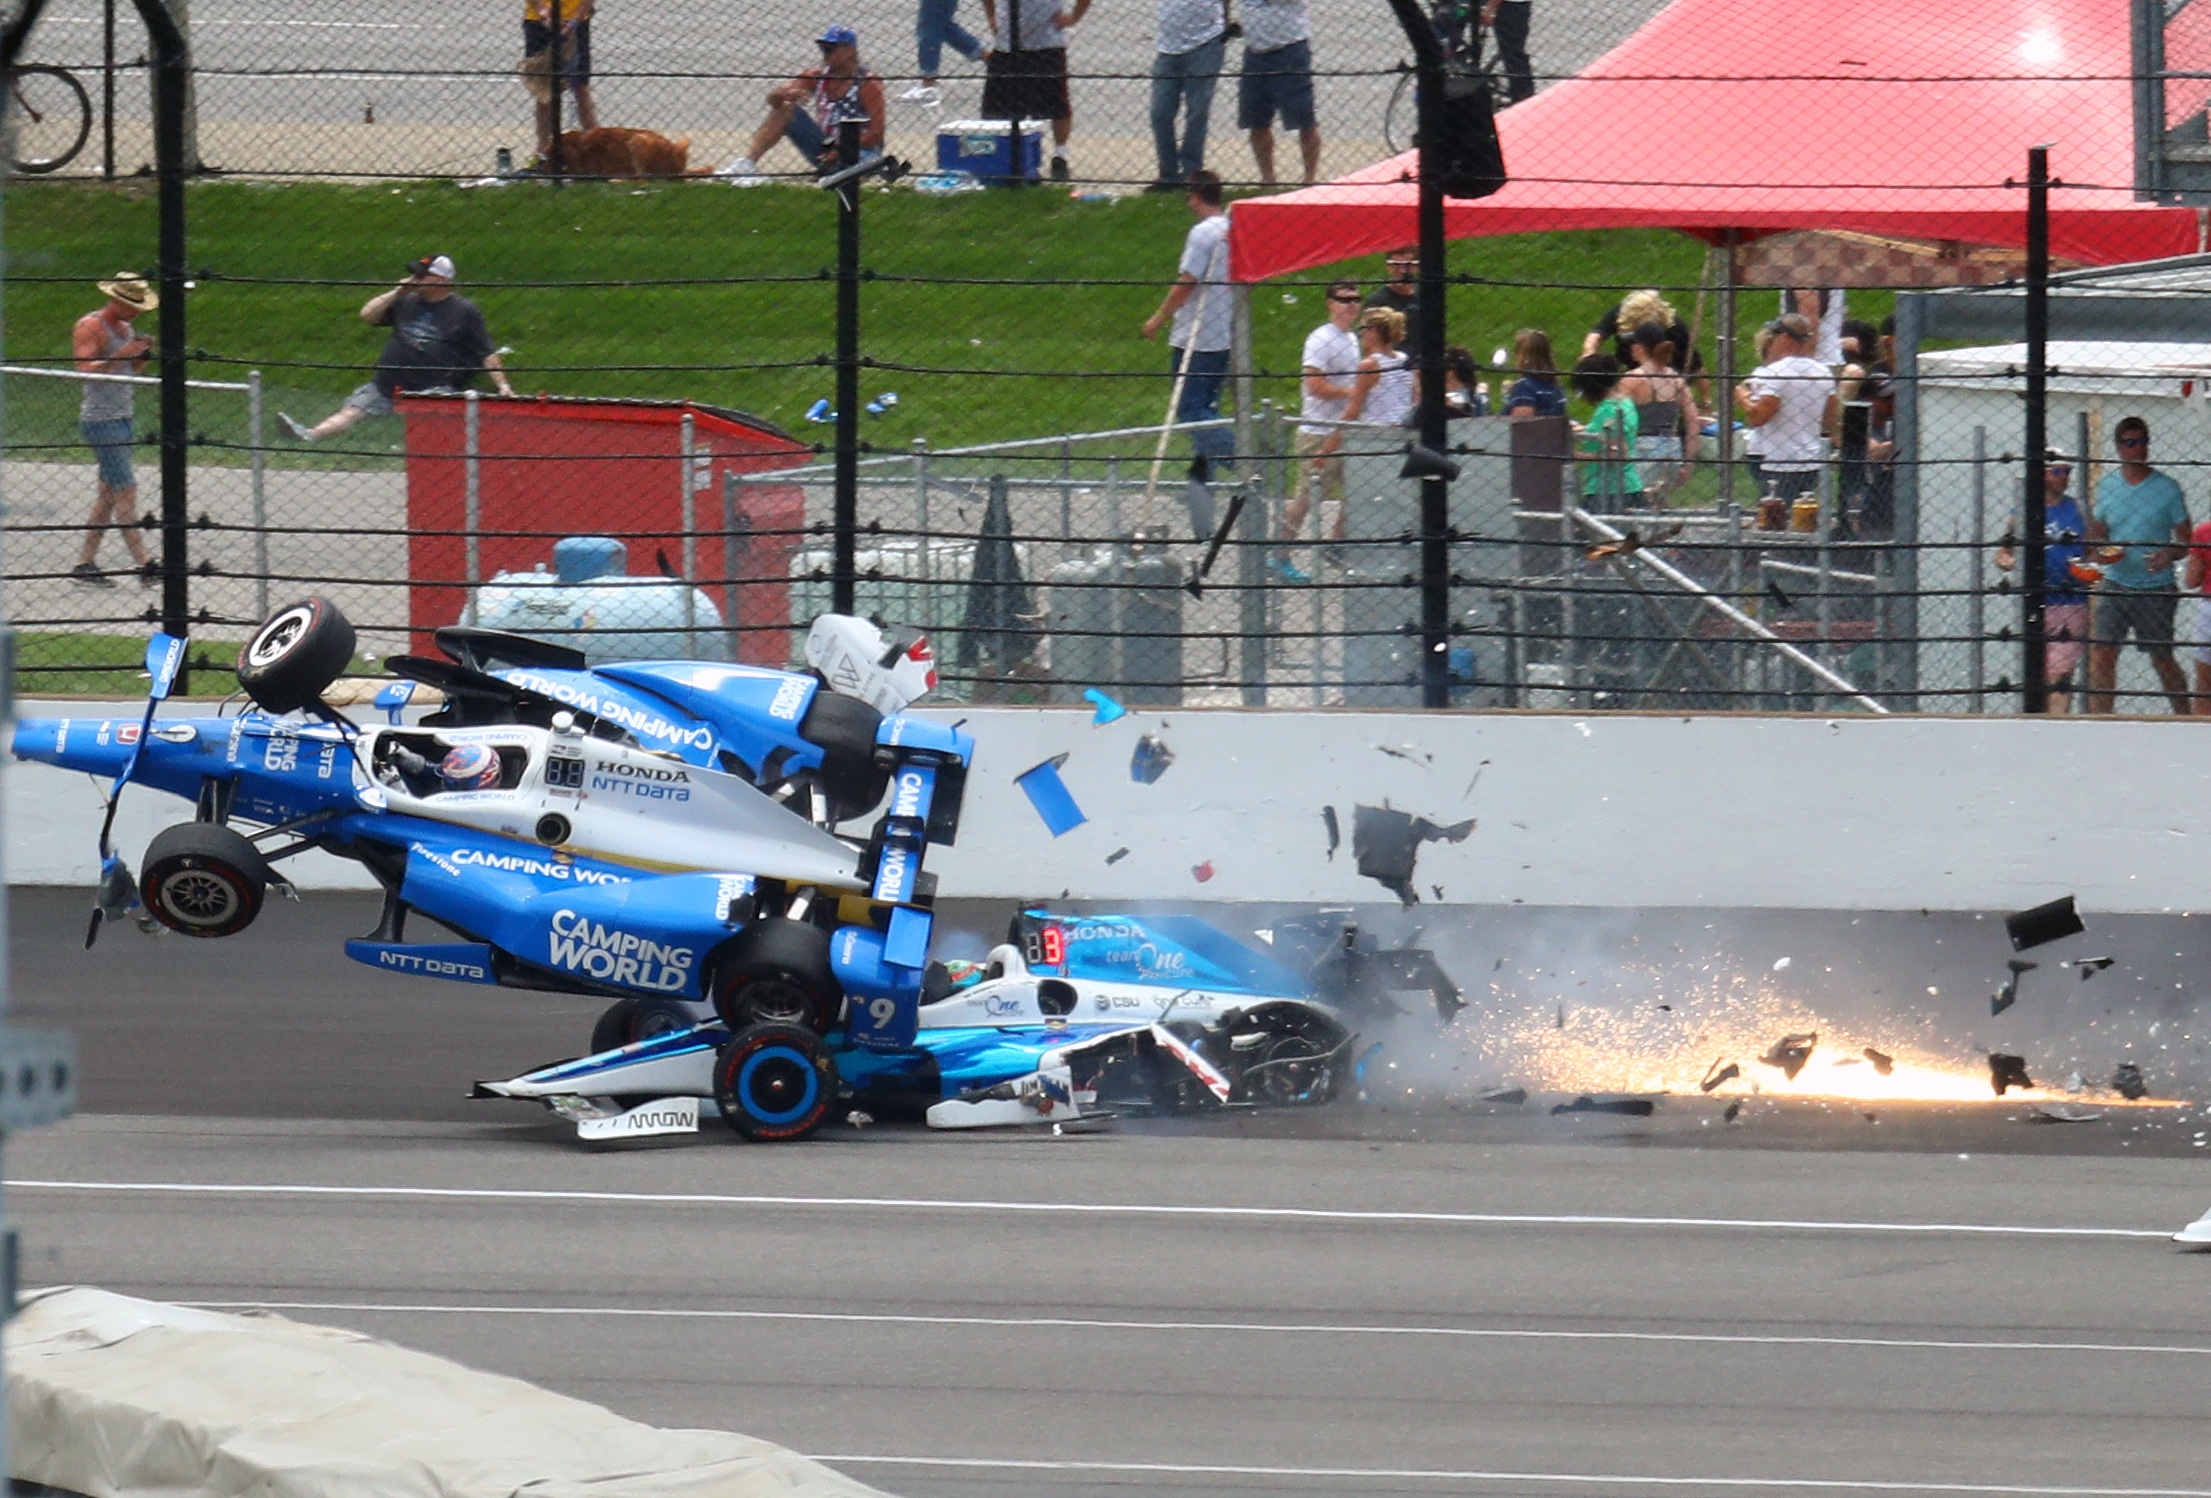 Scott Dixon's car during the collision. Image Credit: Reuters